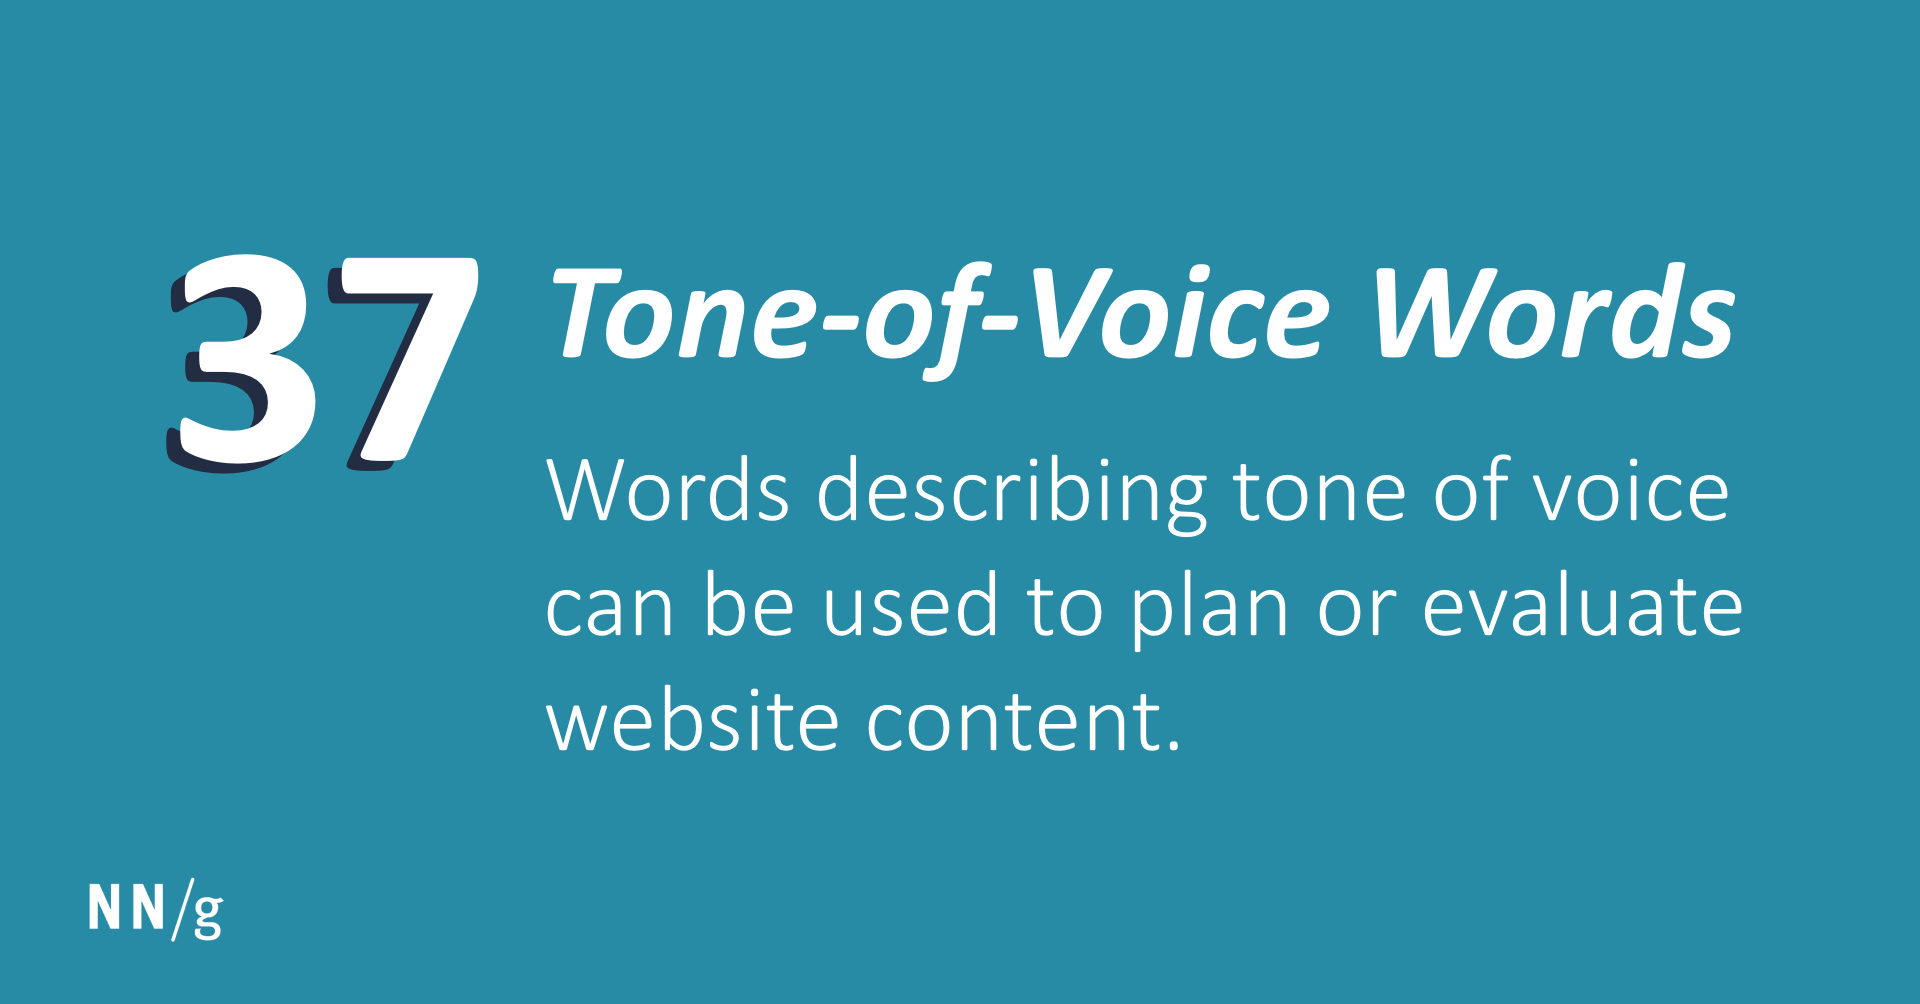 Tone-of-Voice Words